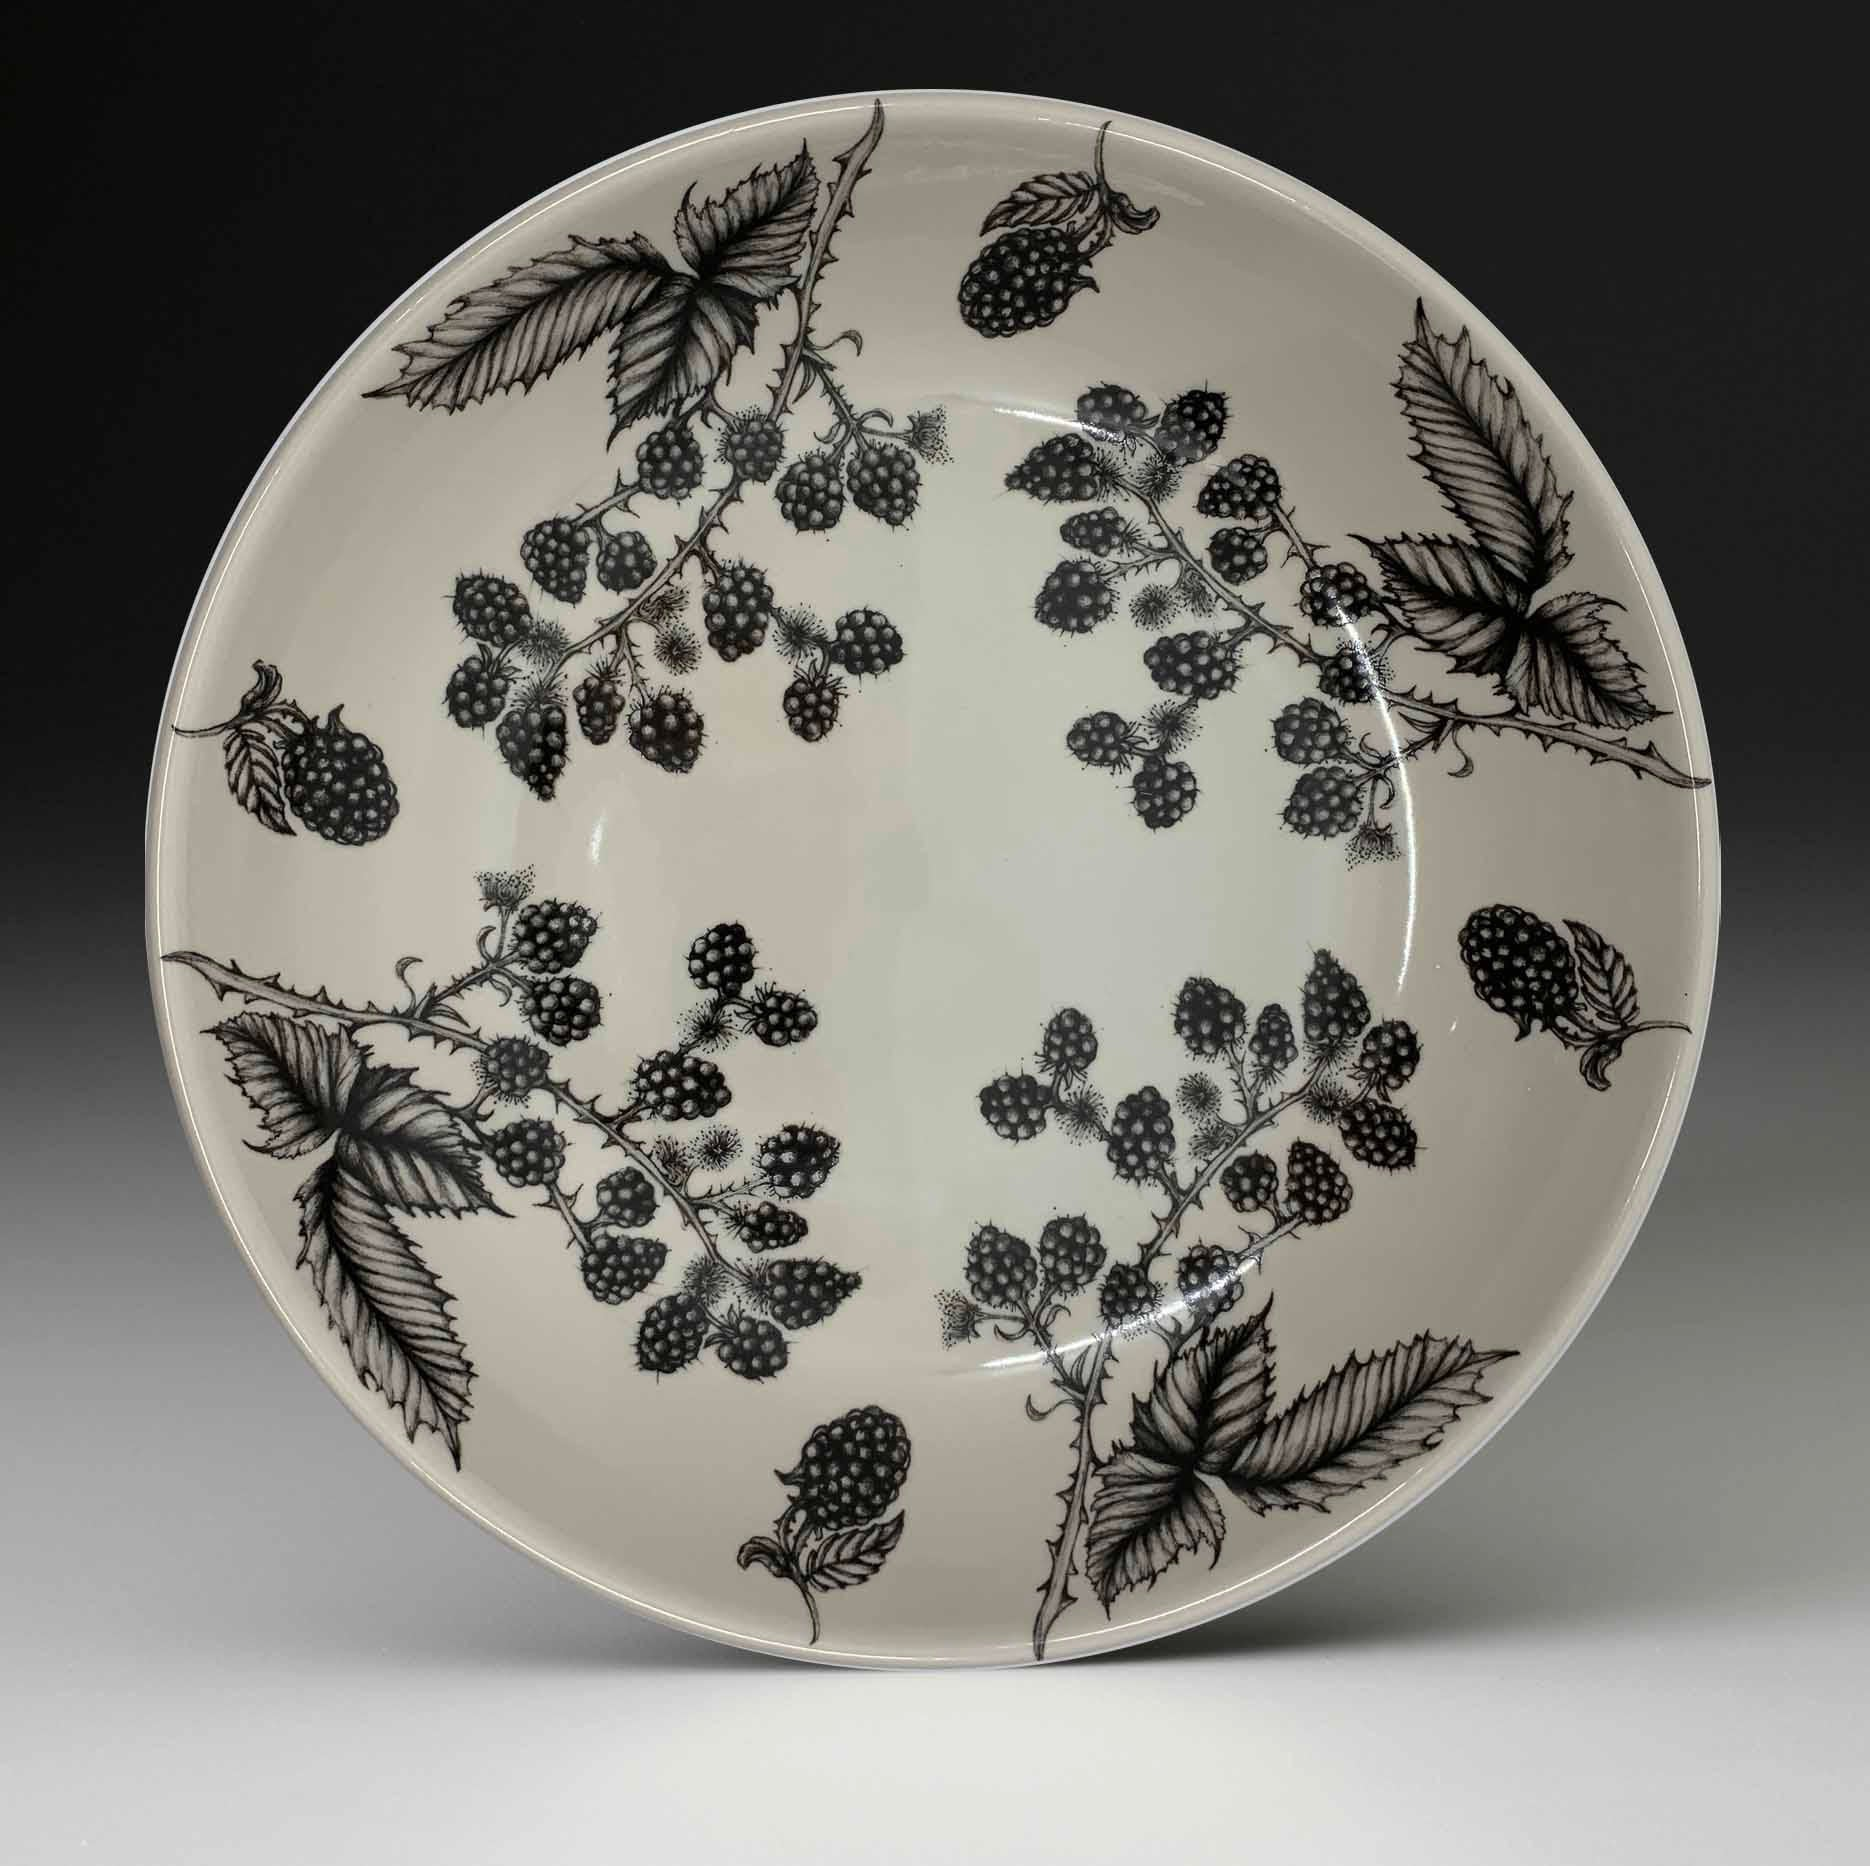 Shallow Serving Bowl - Blackberries